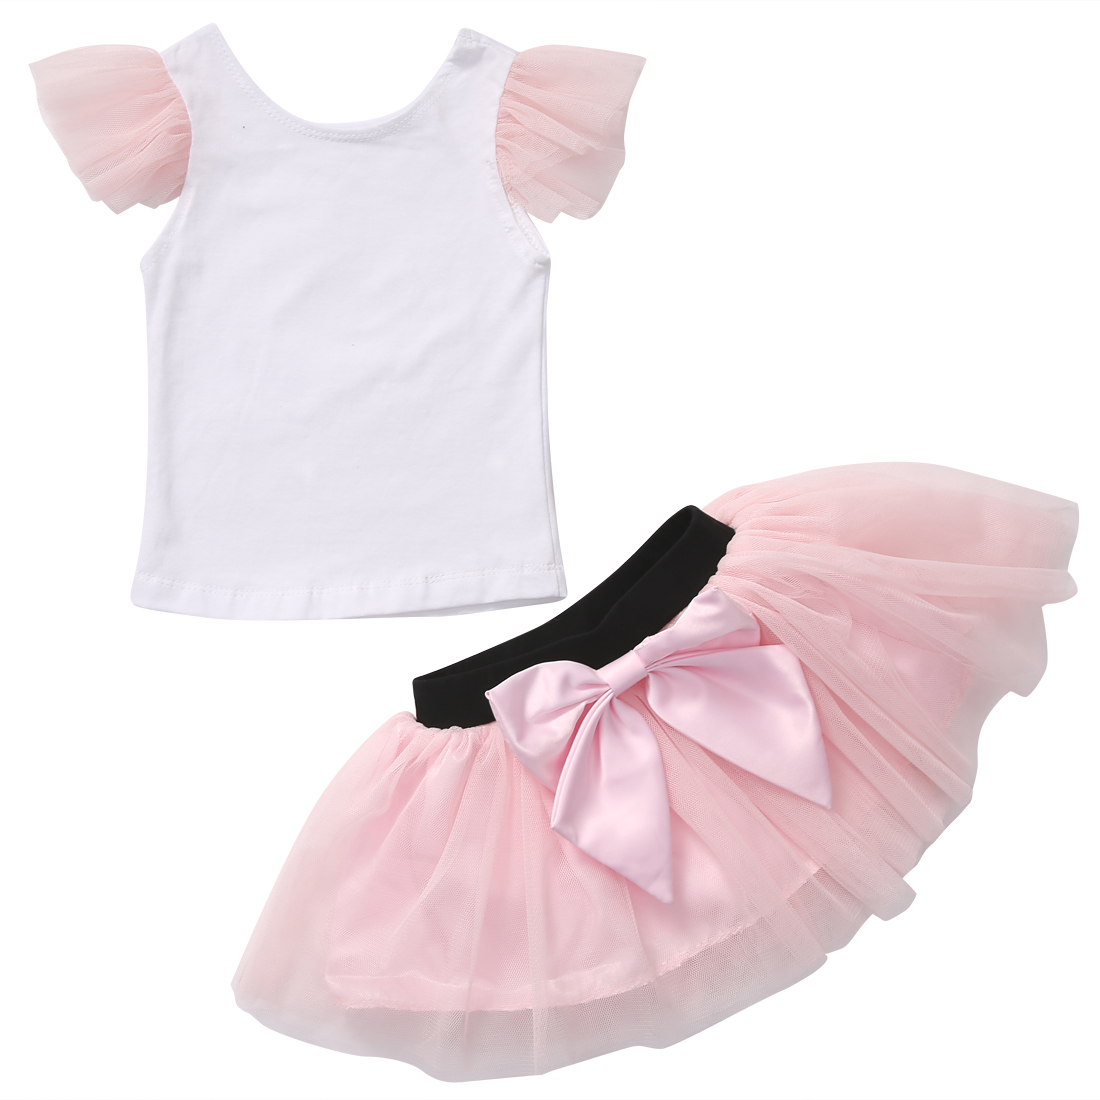 Pink Formal 2Pcs Matching Mother And Daughter Casual Summer T-shirt Skirt Tulle Skirt Outfit